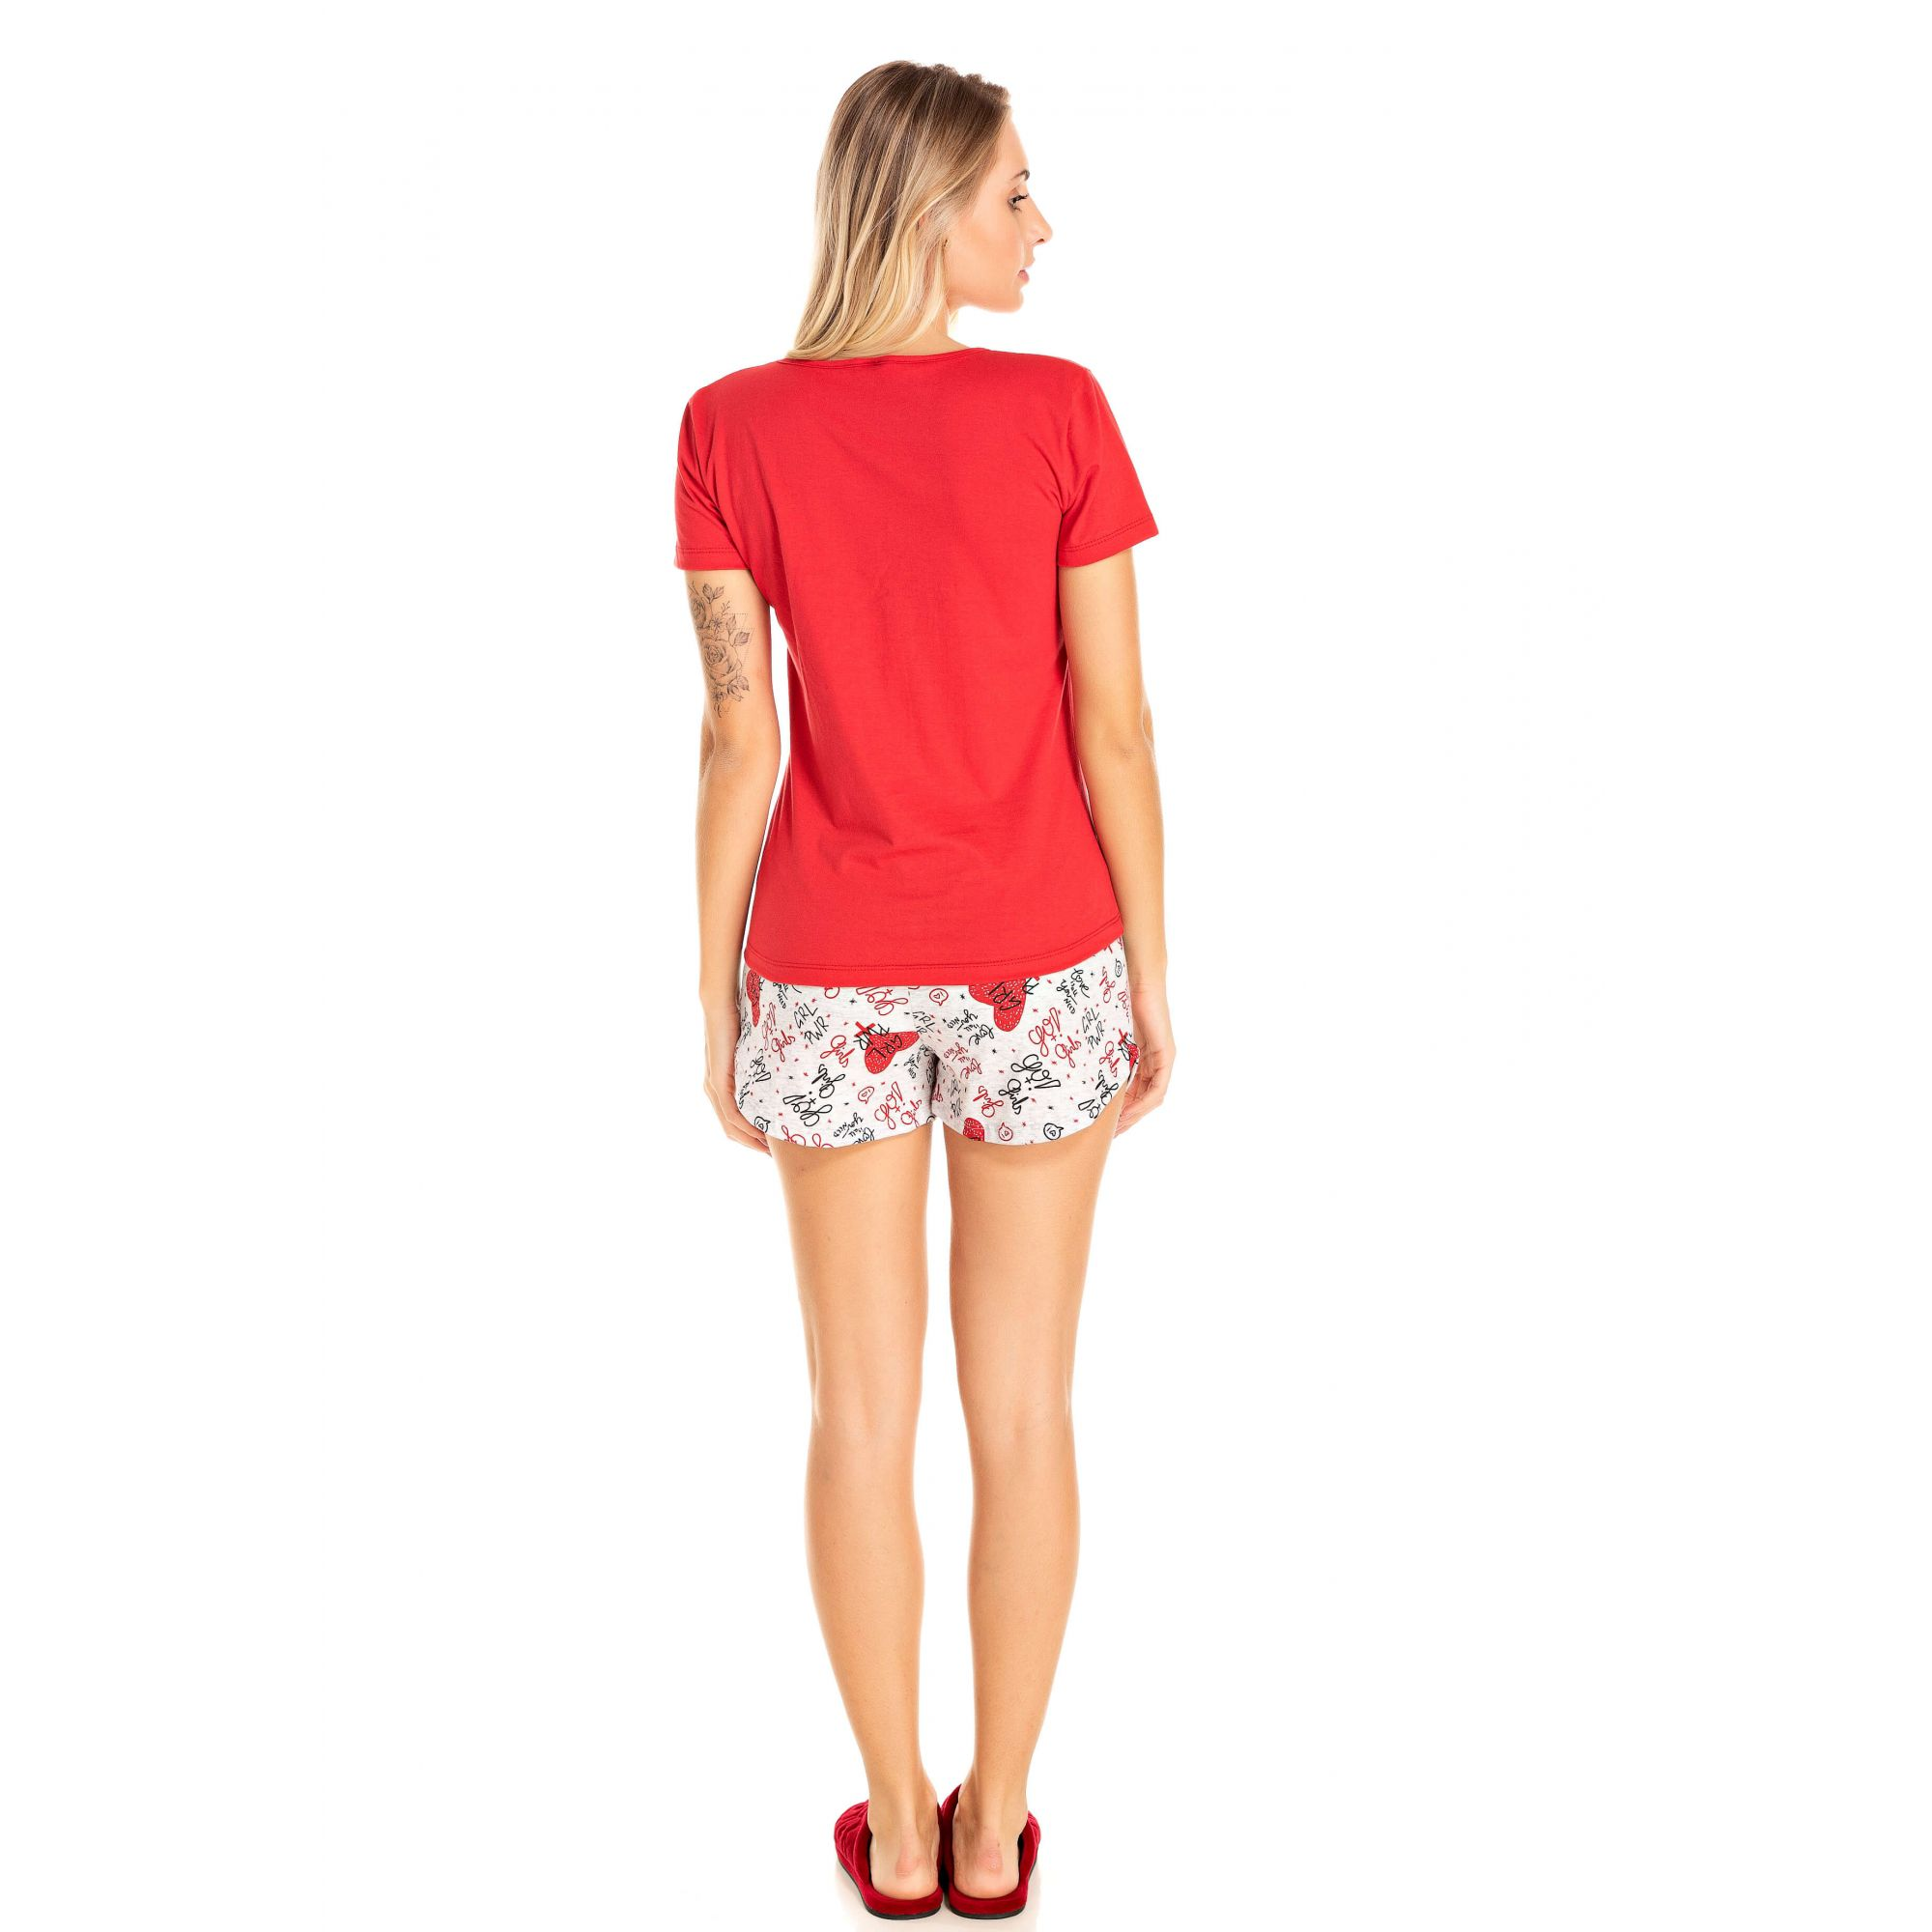 112/I - Short Doll Adulto Feminino Girl Power